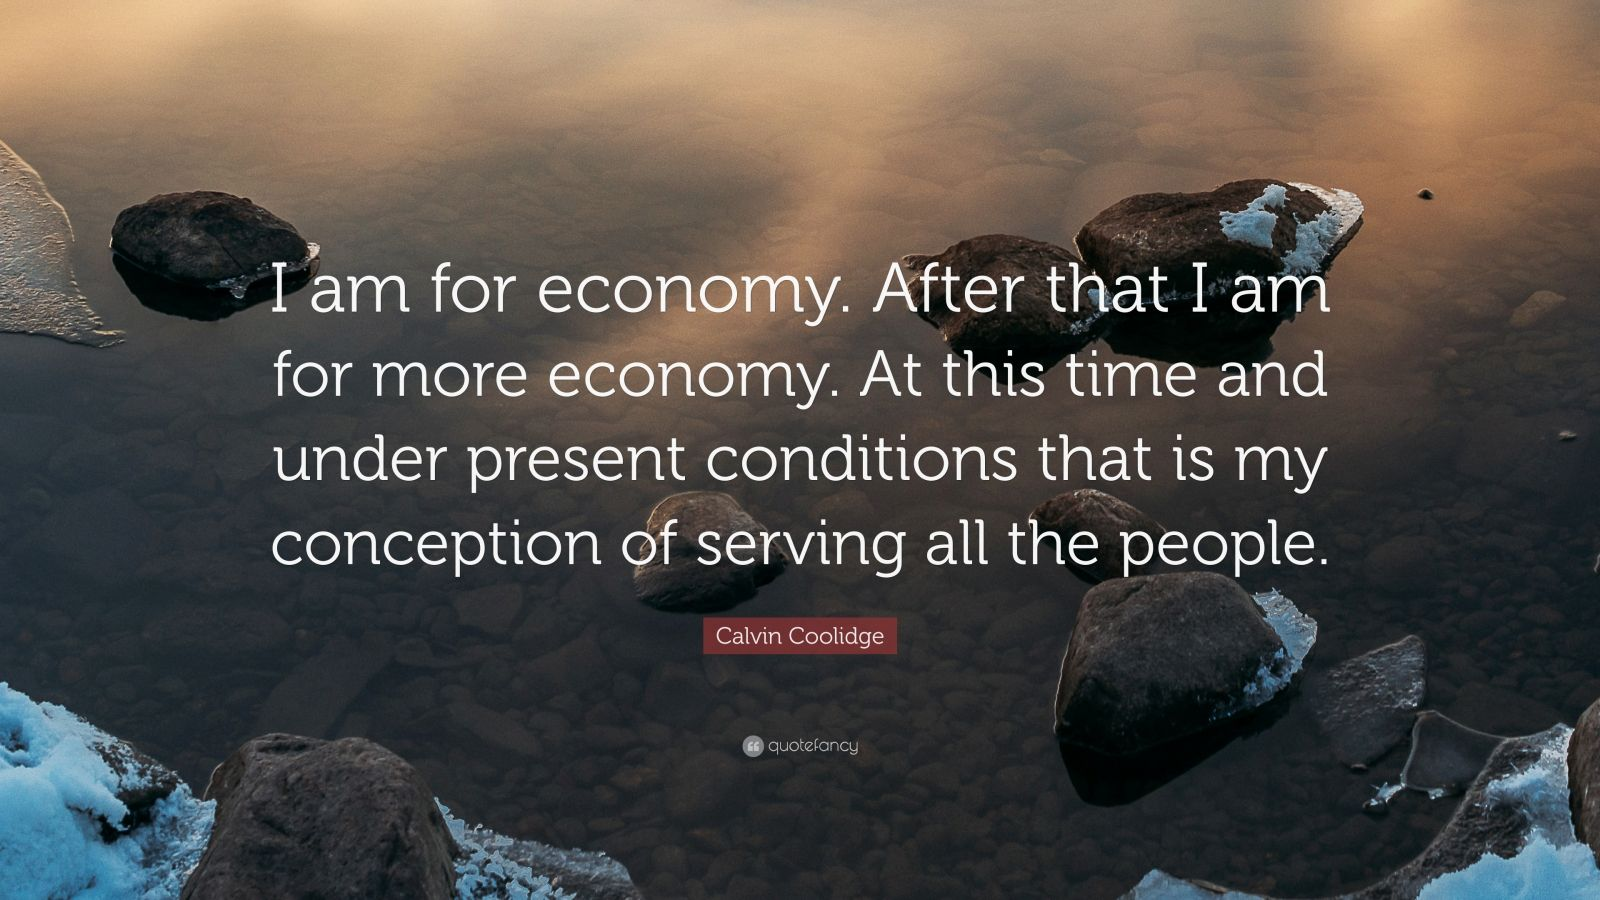 """Calvin Coolidge Quote: """"I am for economy. After that I am for more economy. At this time and under present conditions that is my conception of serving all the people."""""""